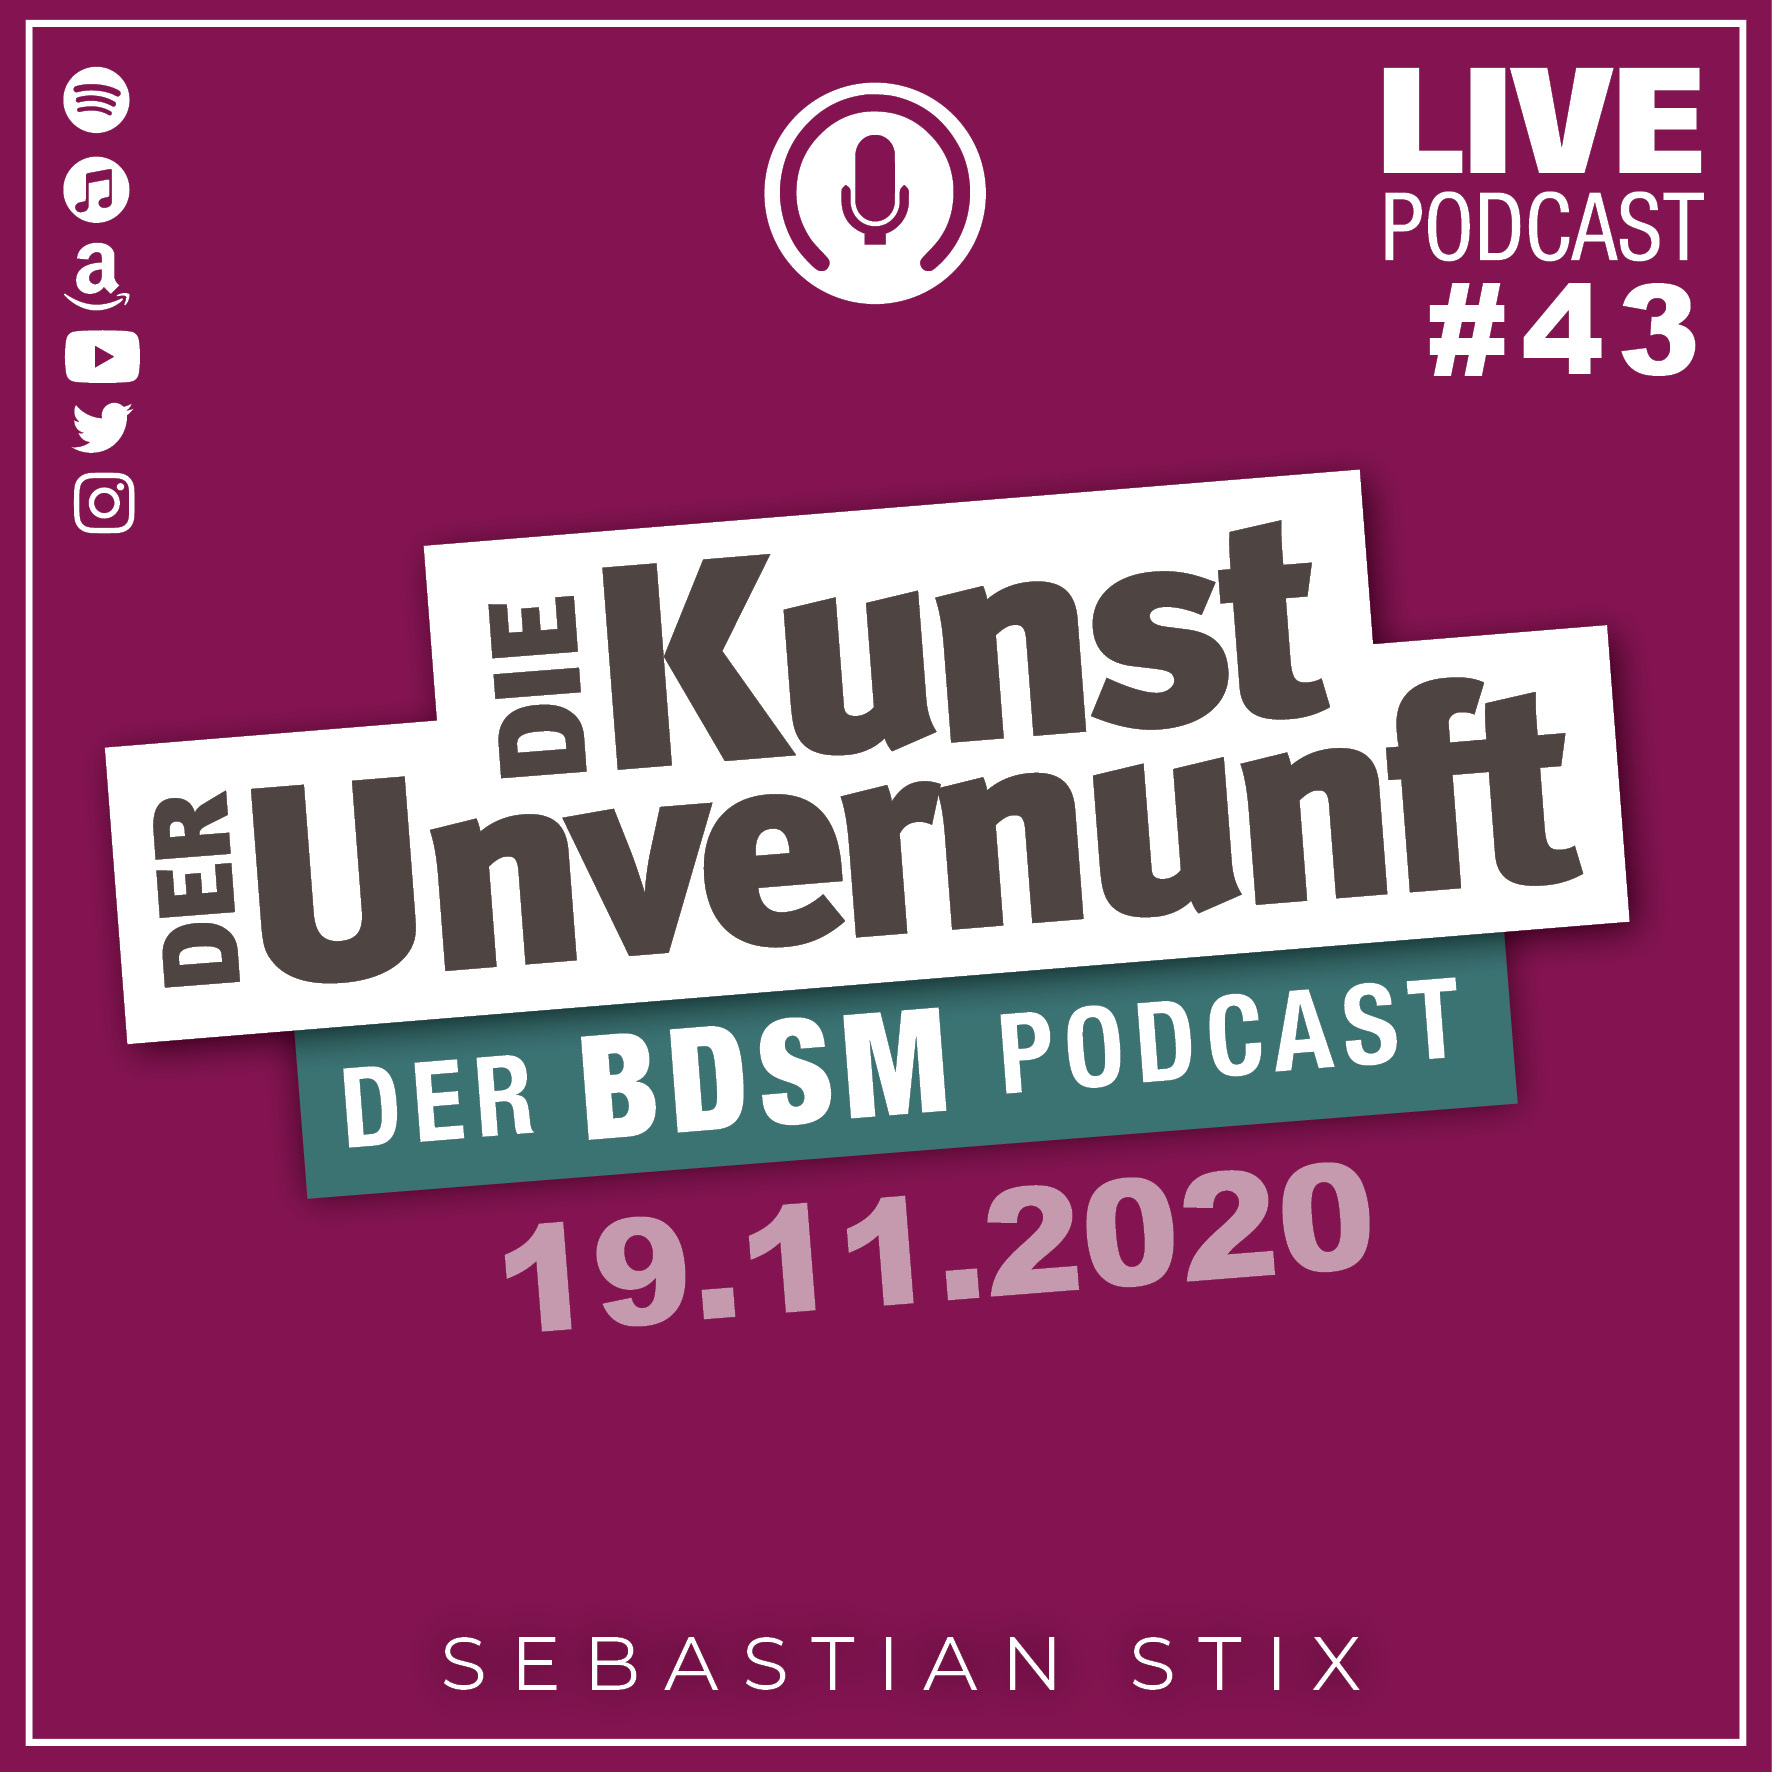 Unvernunft Live 19.11.20 - Podcast-Upgrade 2020